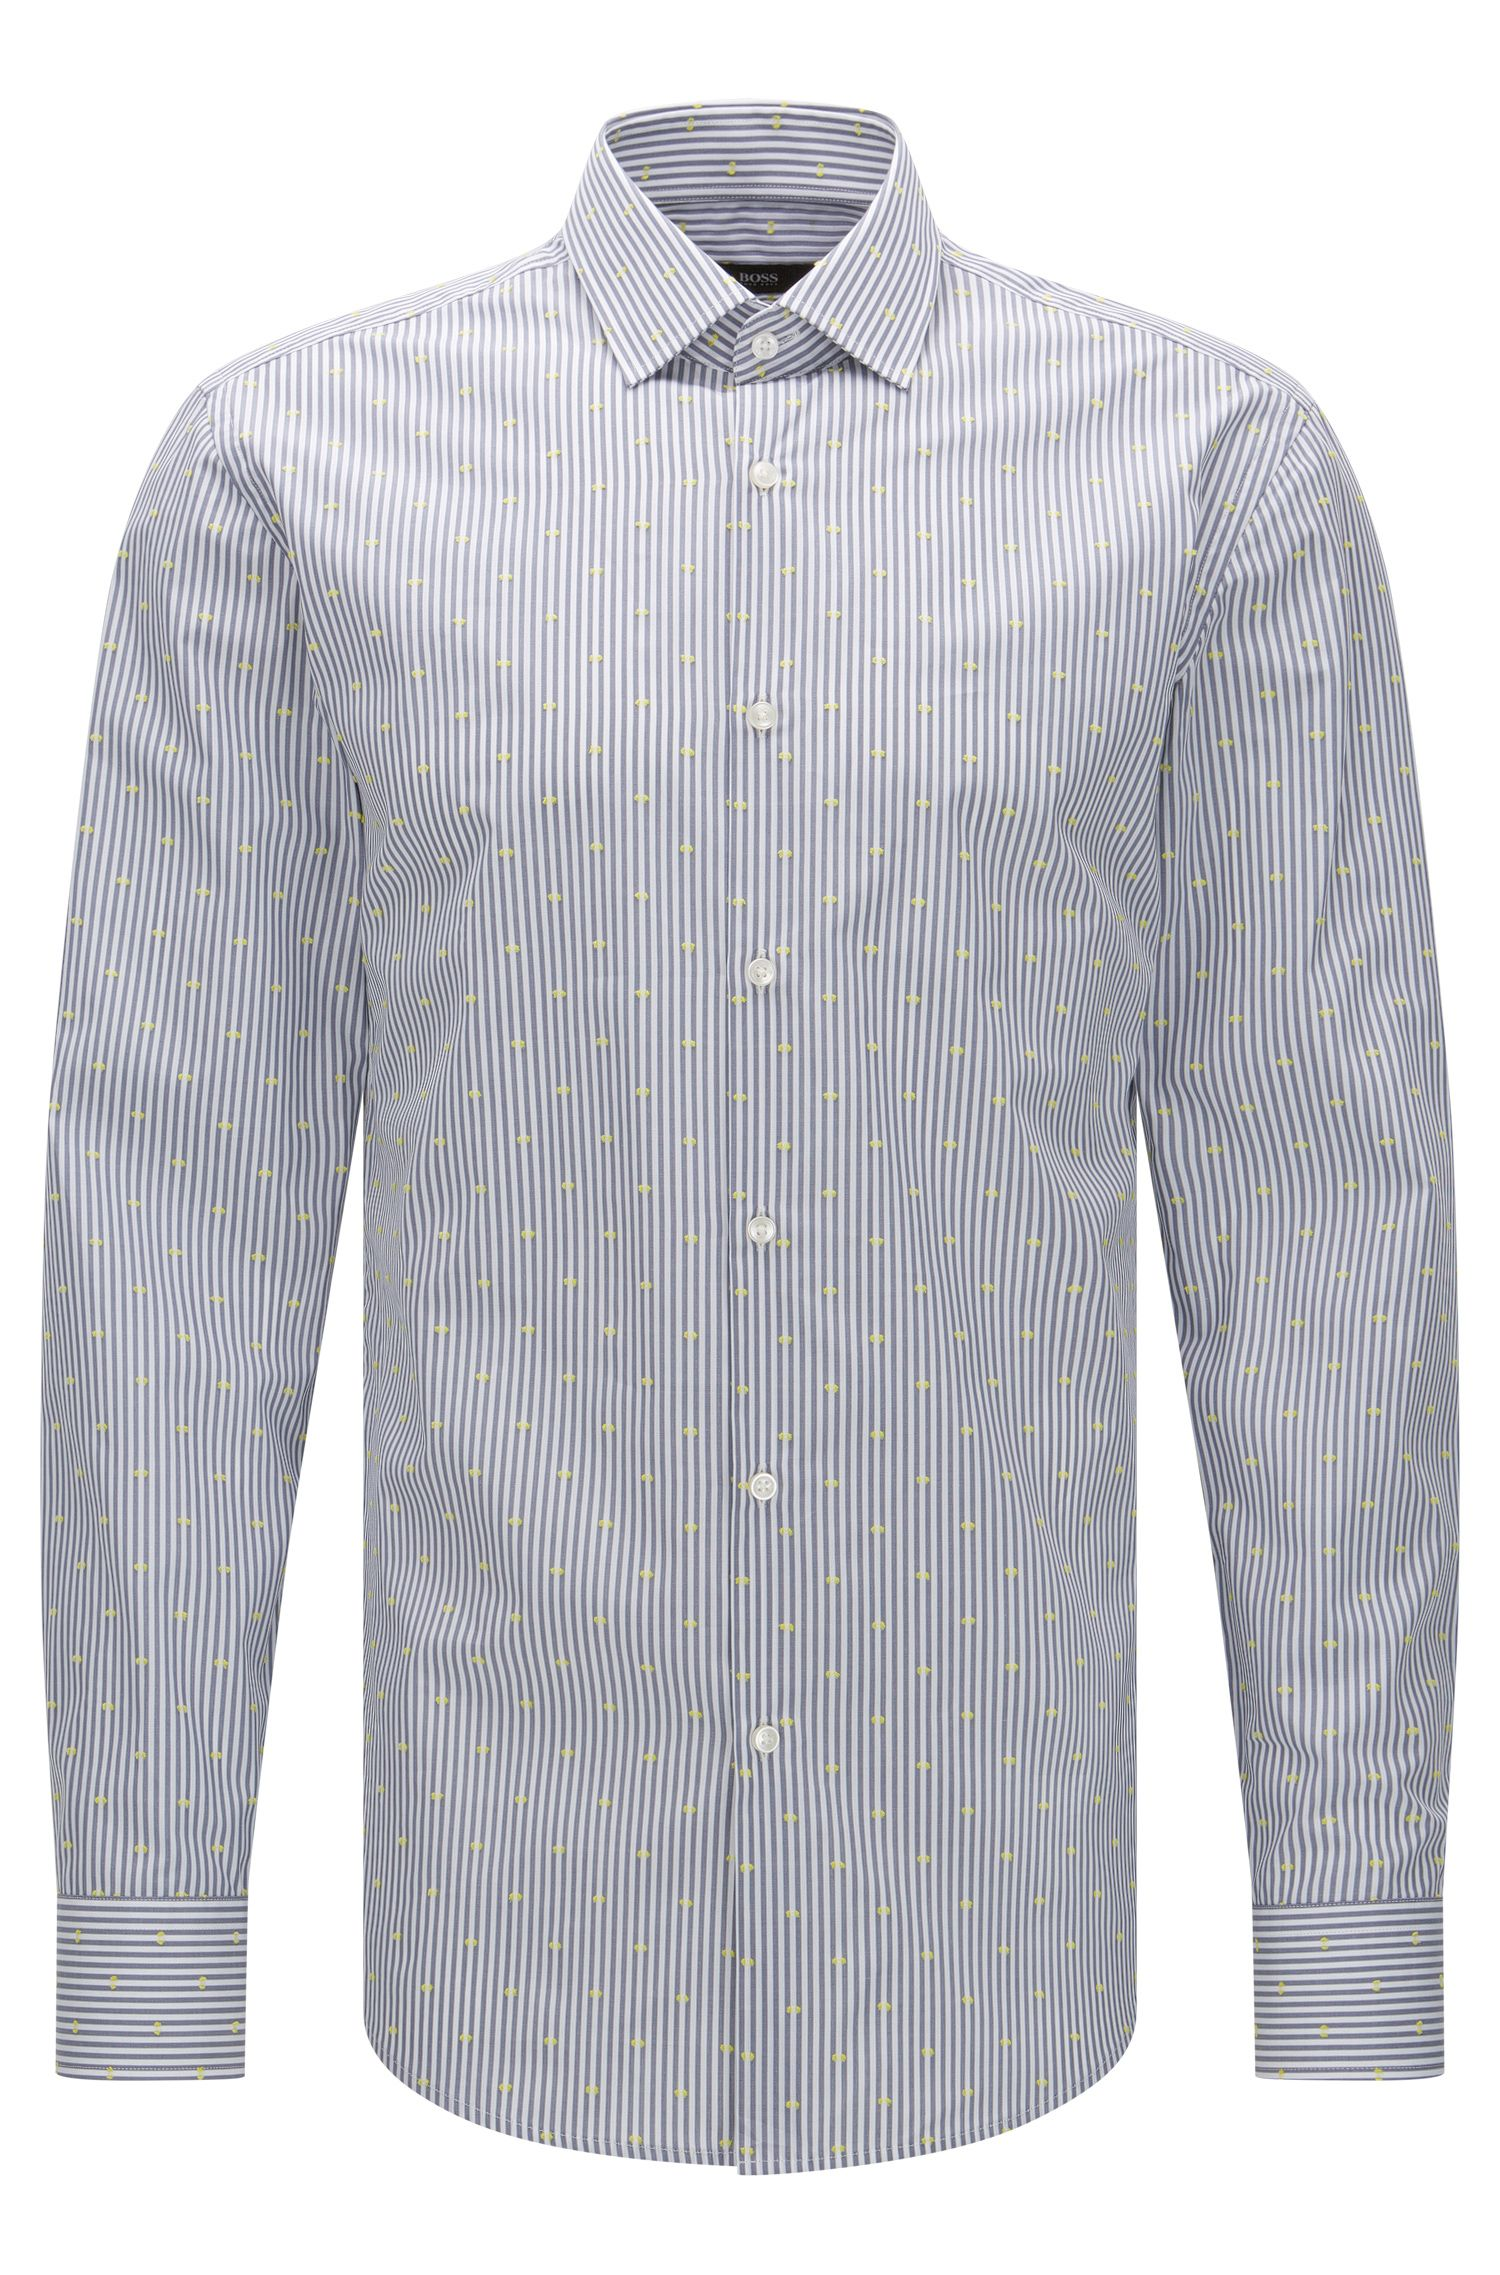 Jacquard Striped Cotton Dress Shirt, Slim Fit | Jenno